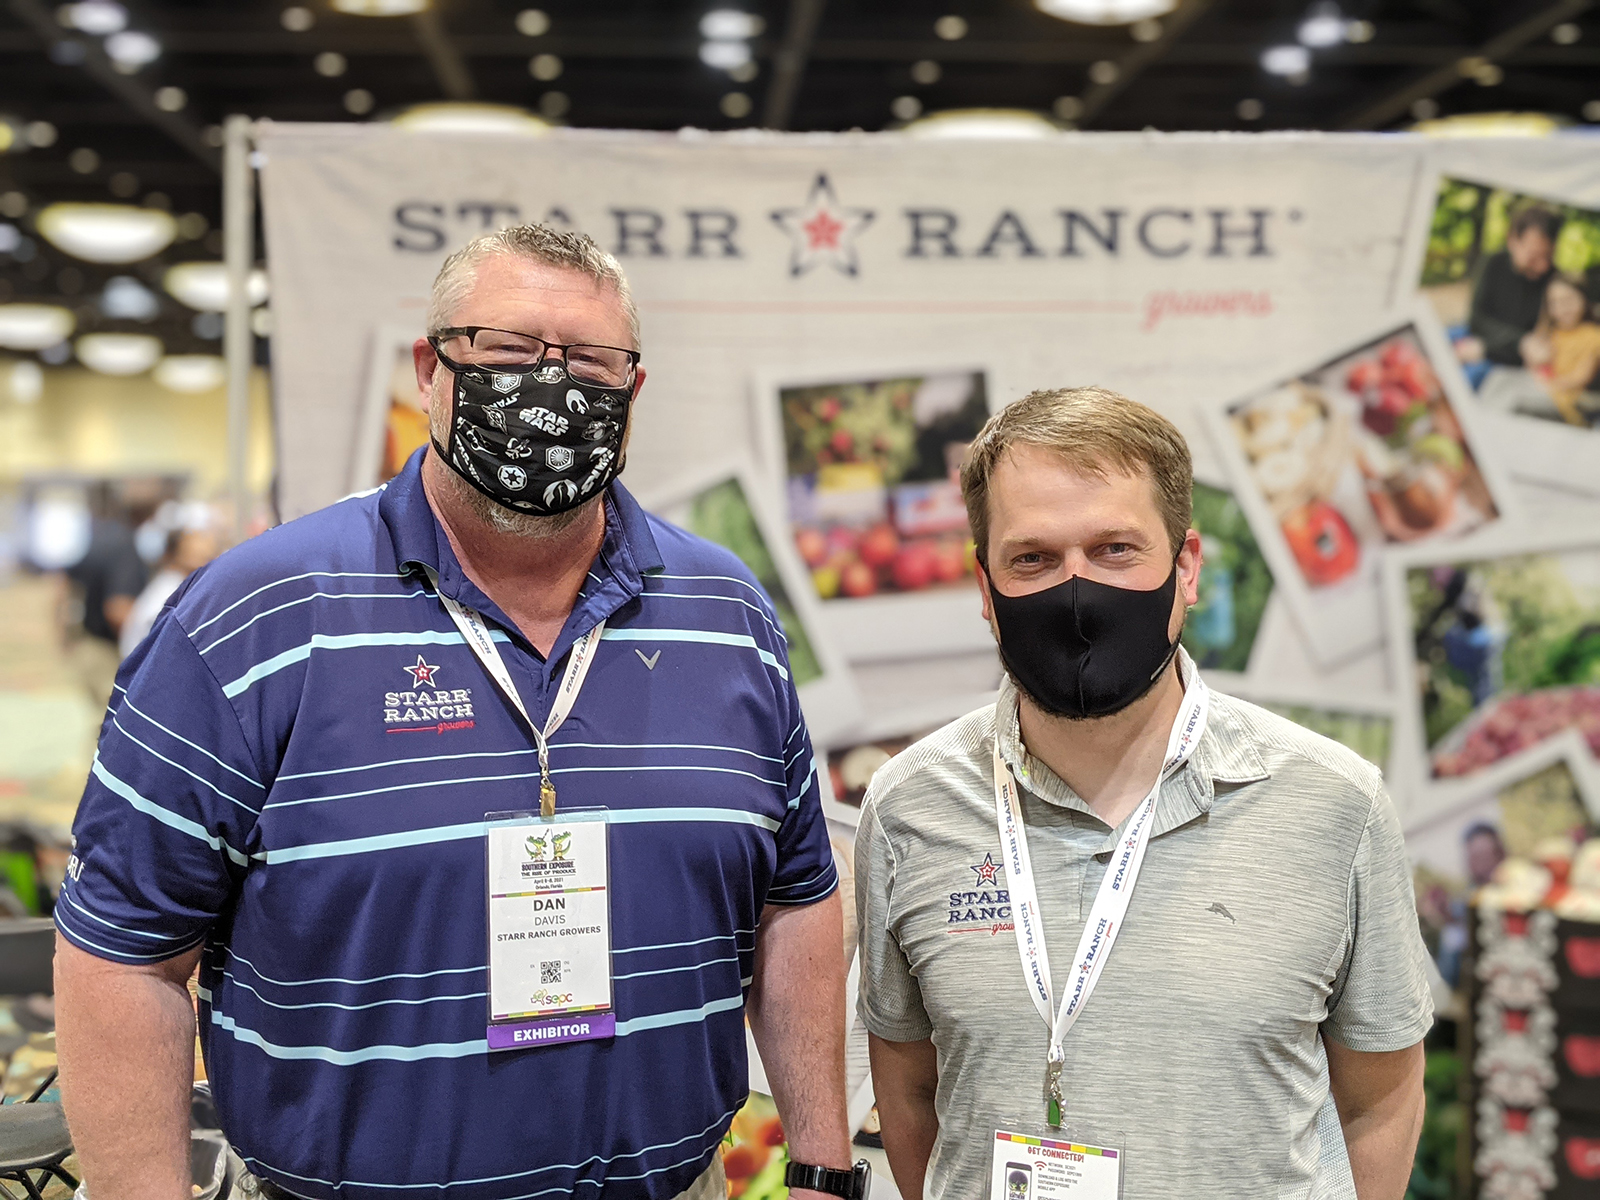 Dan Davis and Brent Shammo of Starr Ranch Growers.